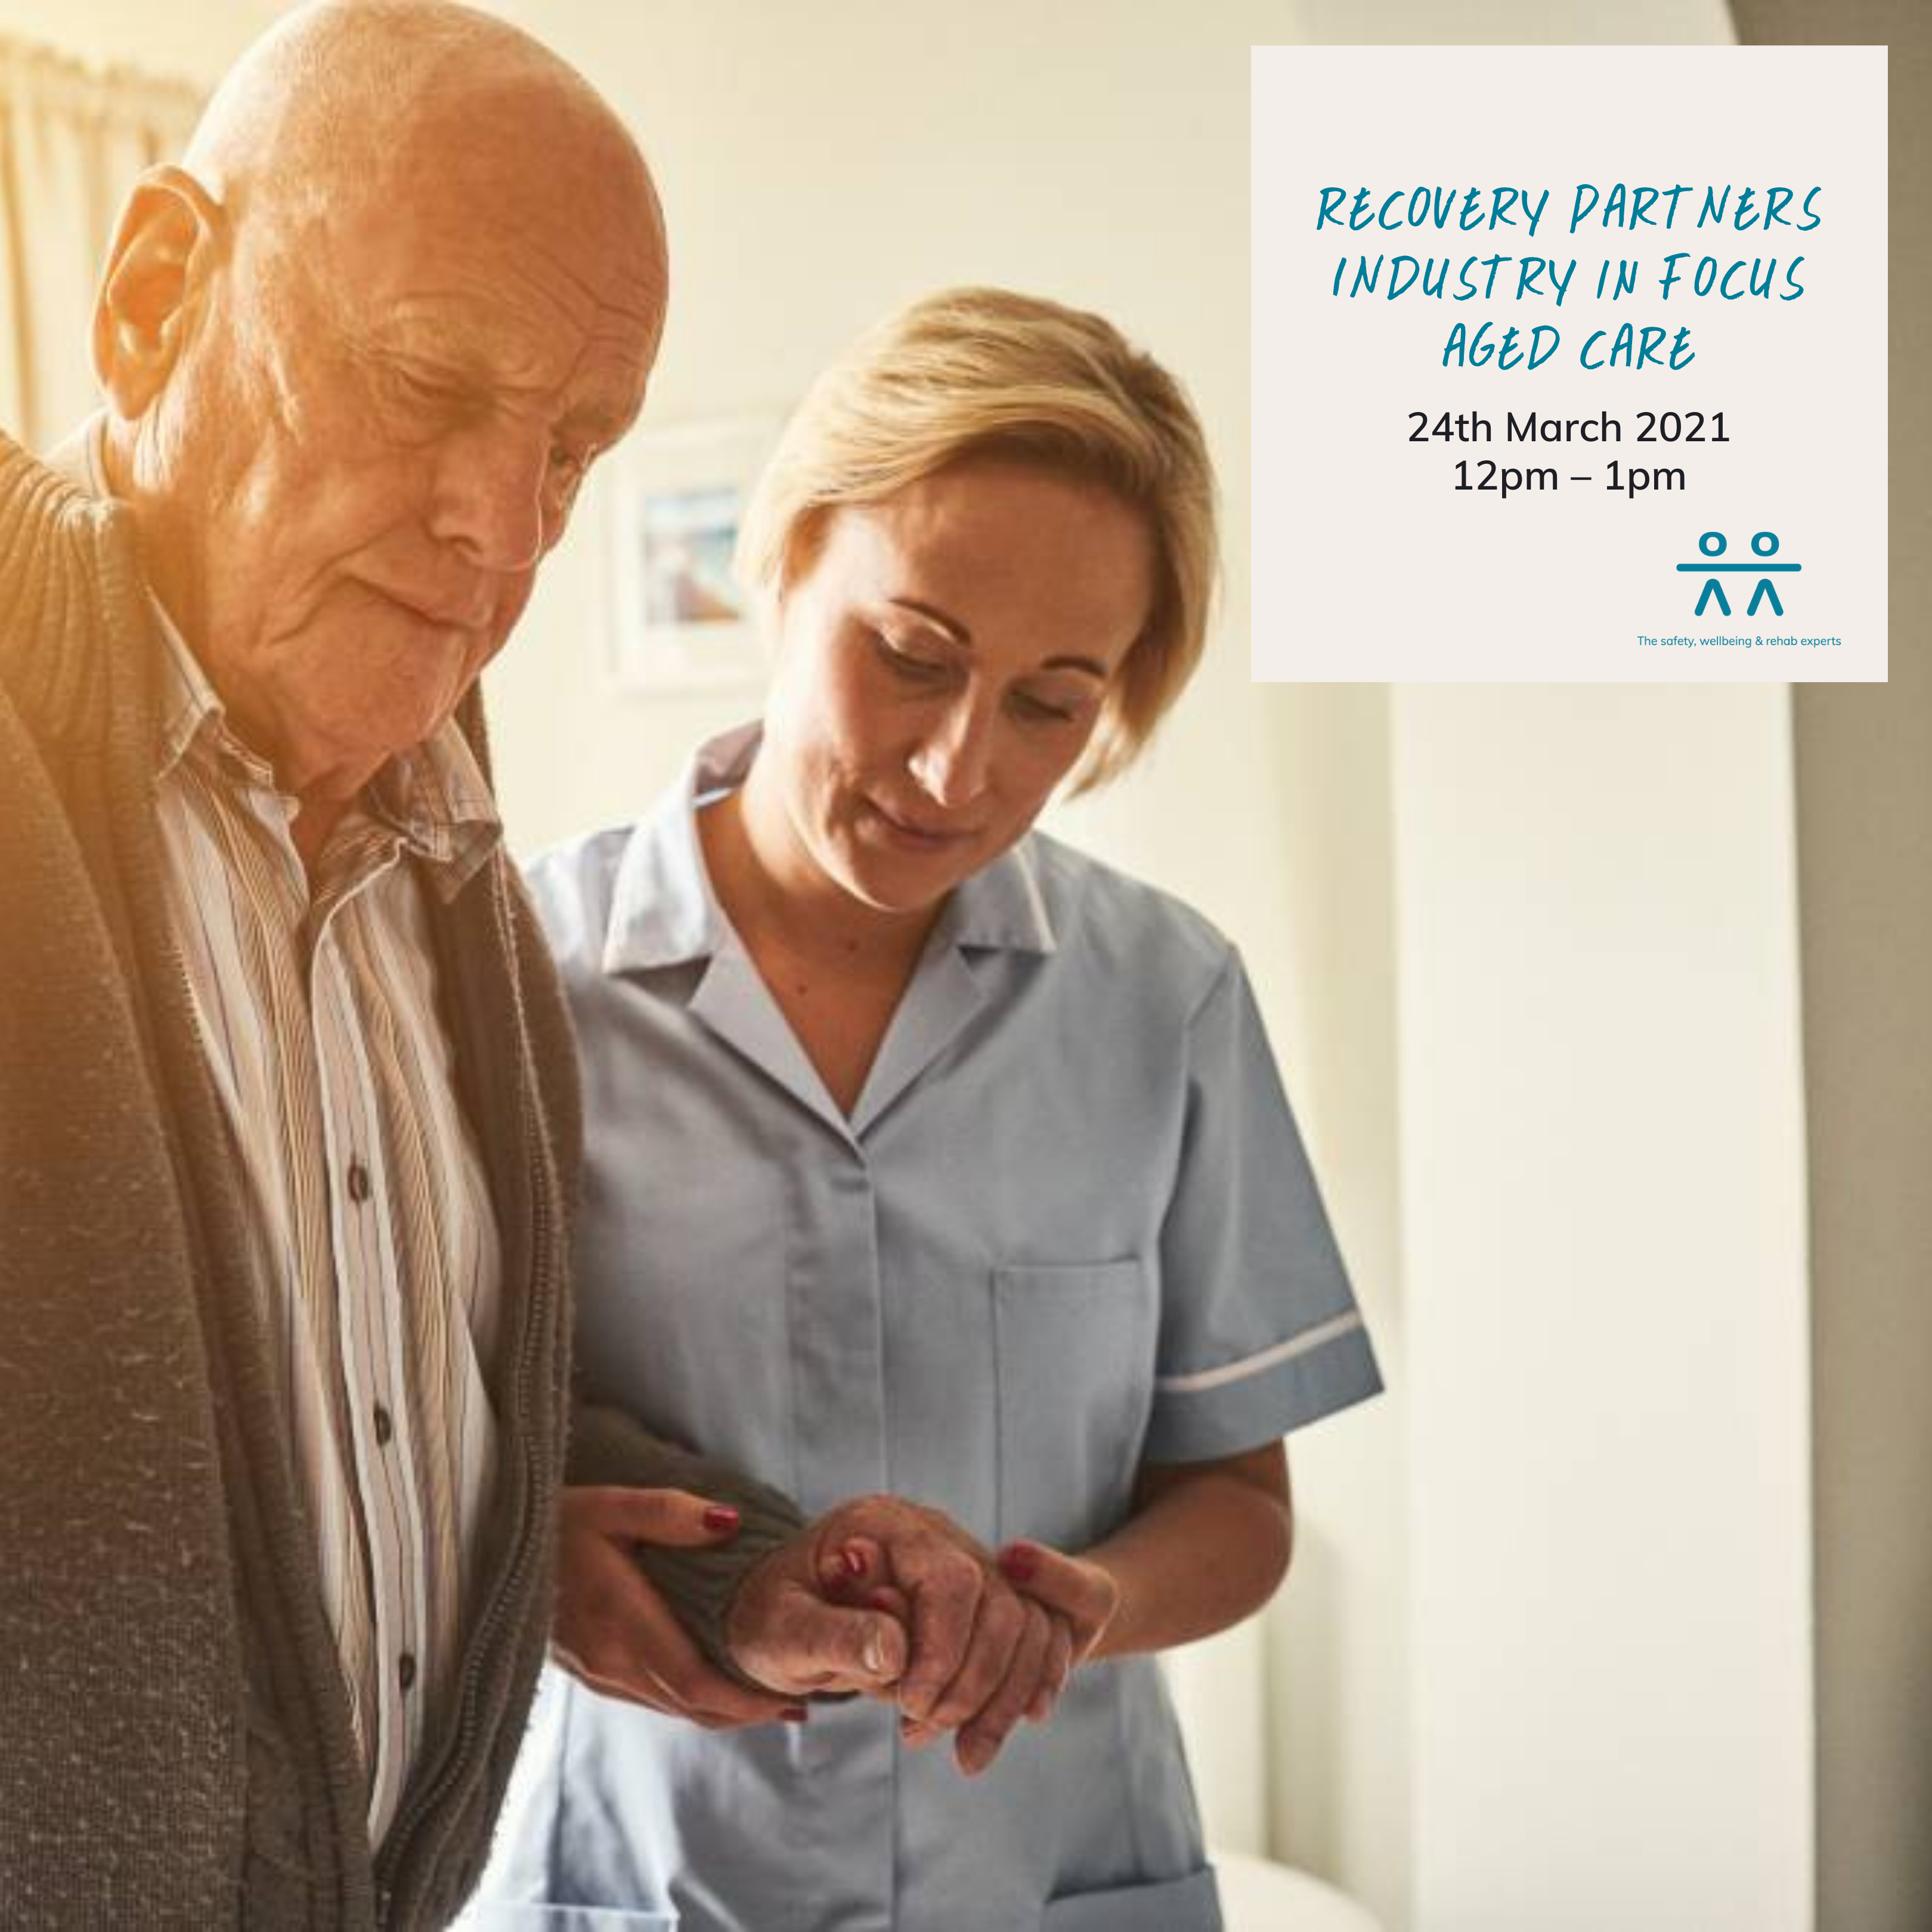 Industry in Focus - Aged Care